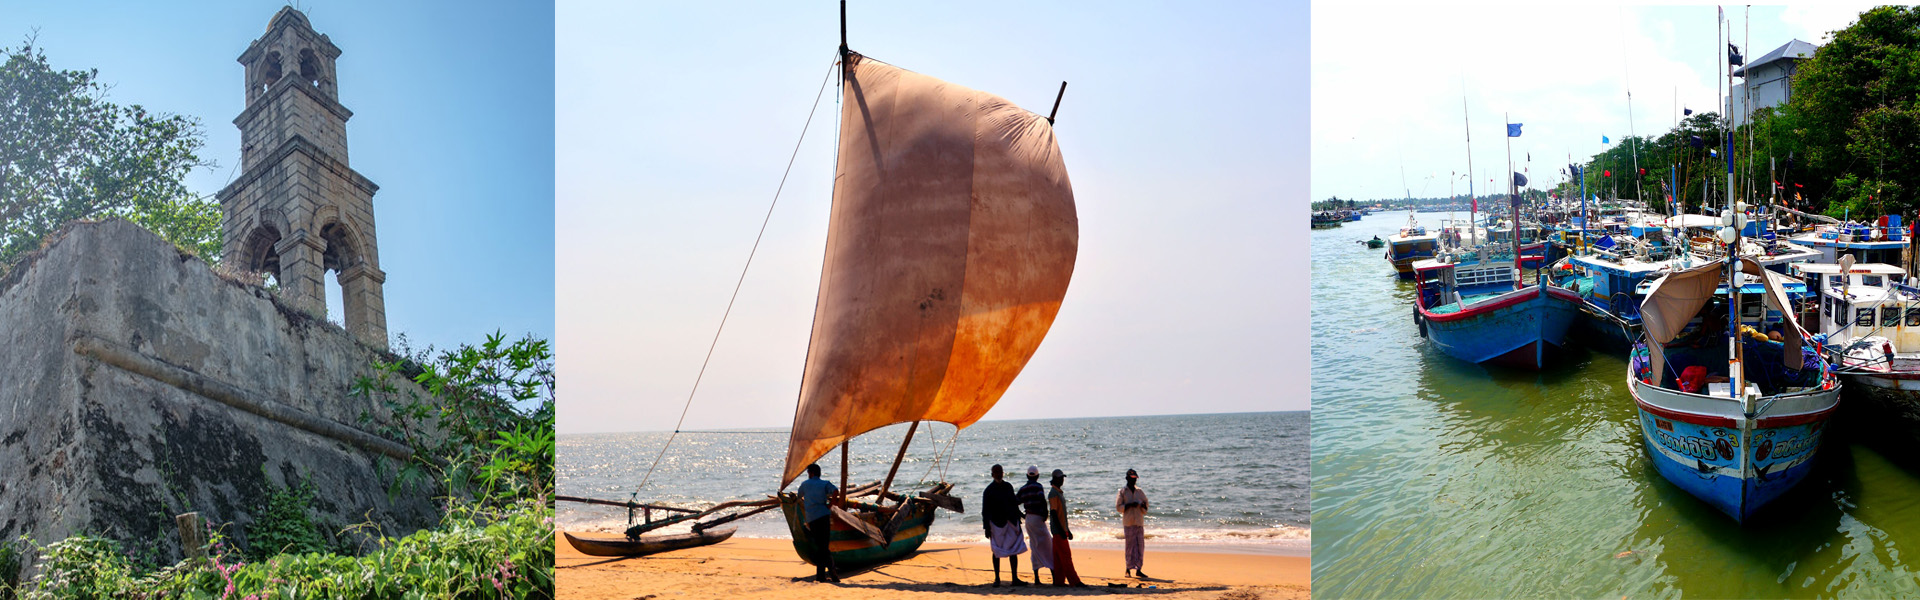 Negombo - Attractions